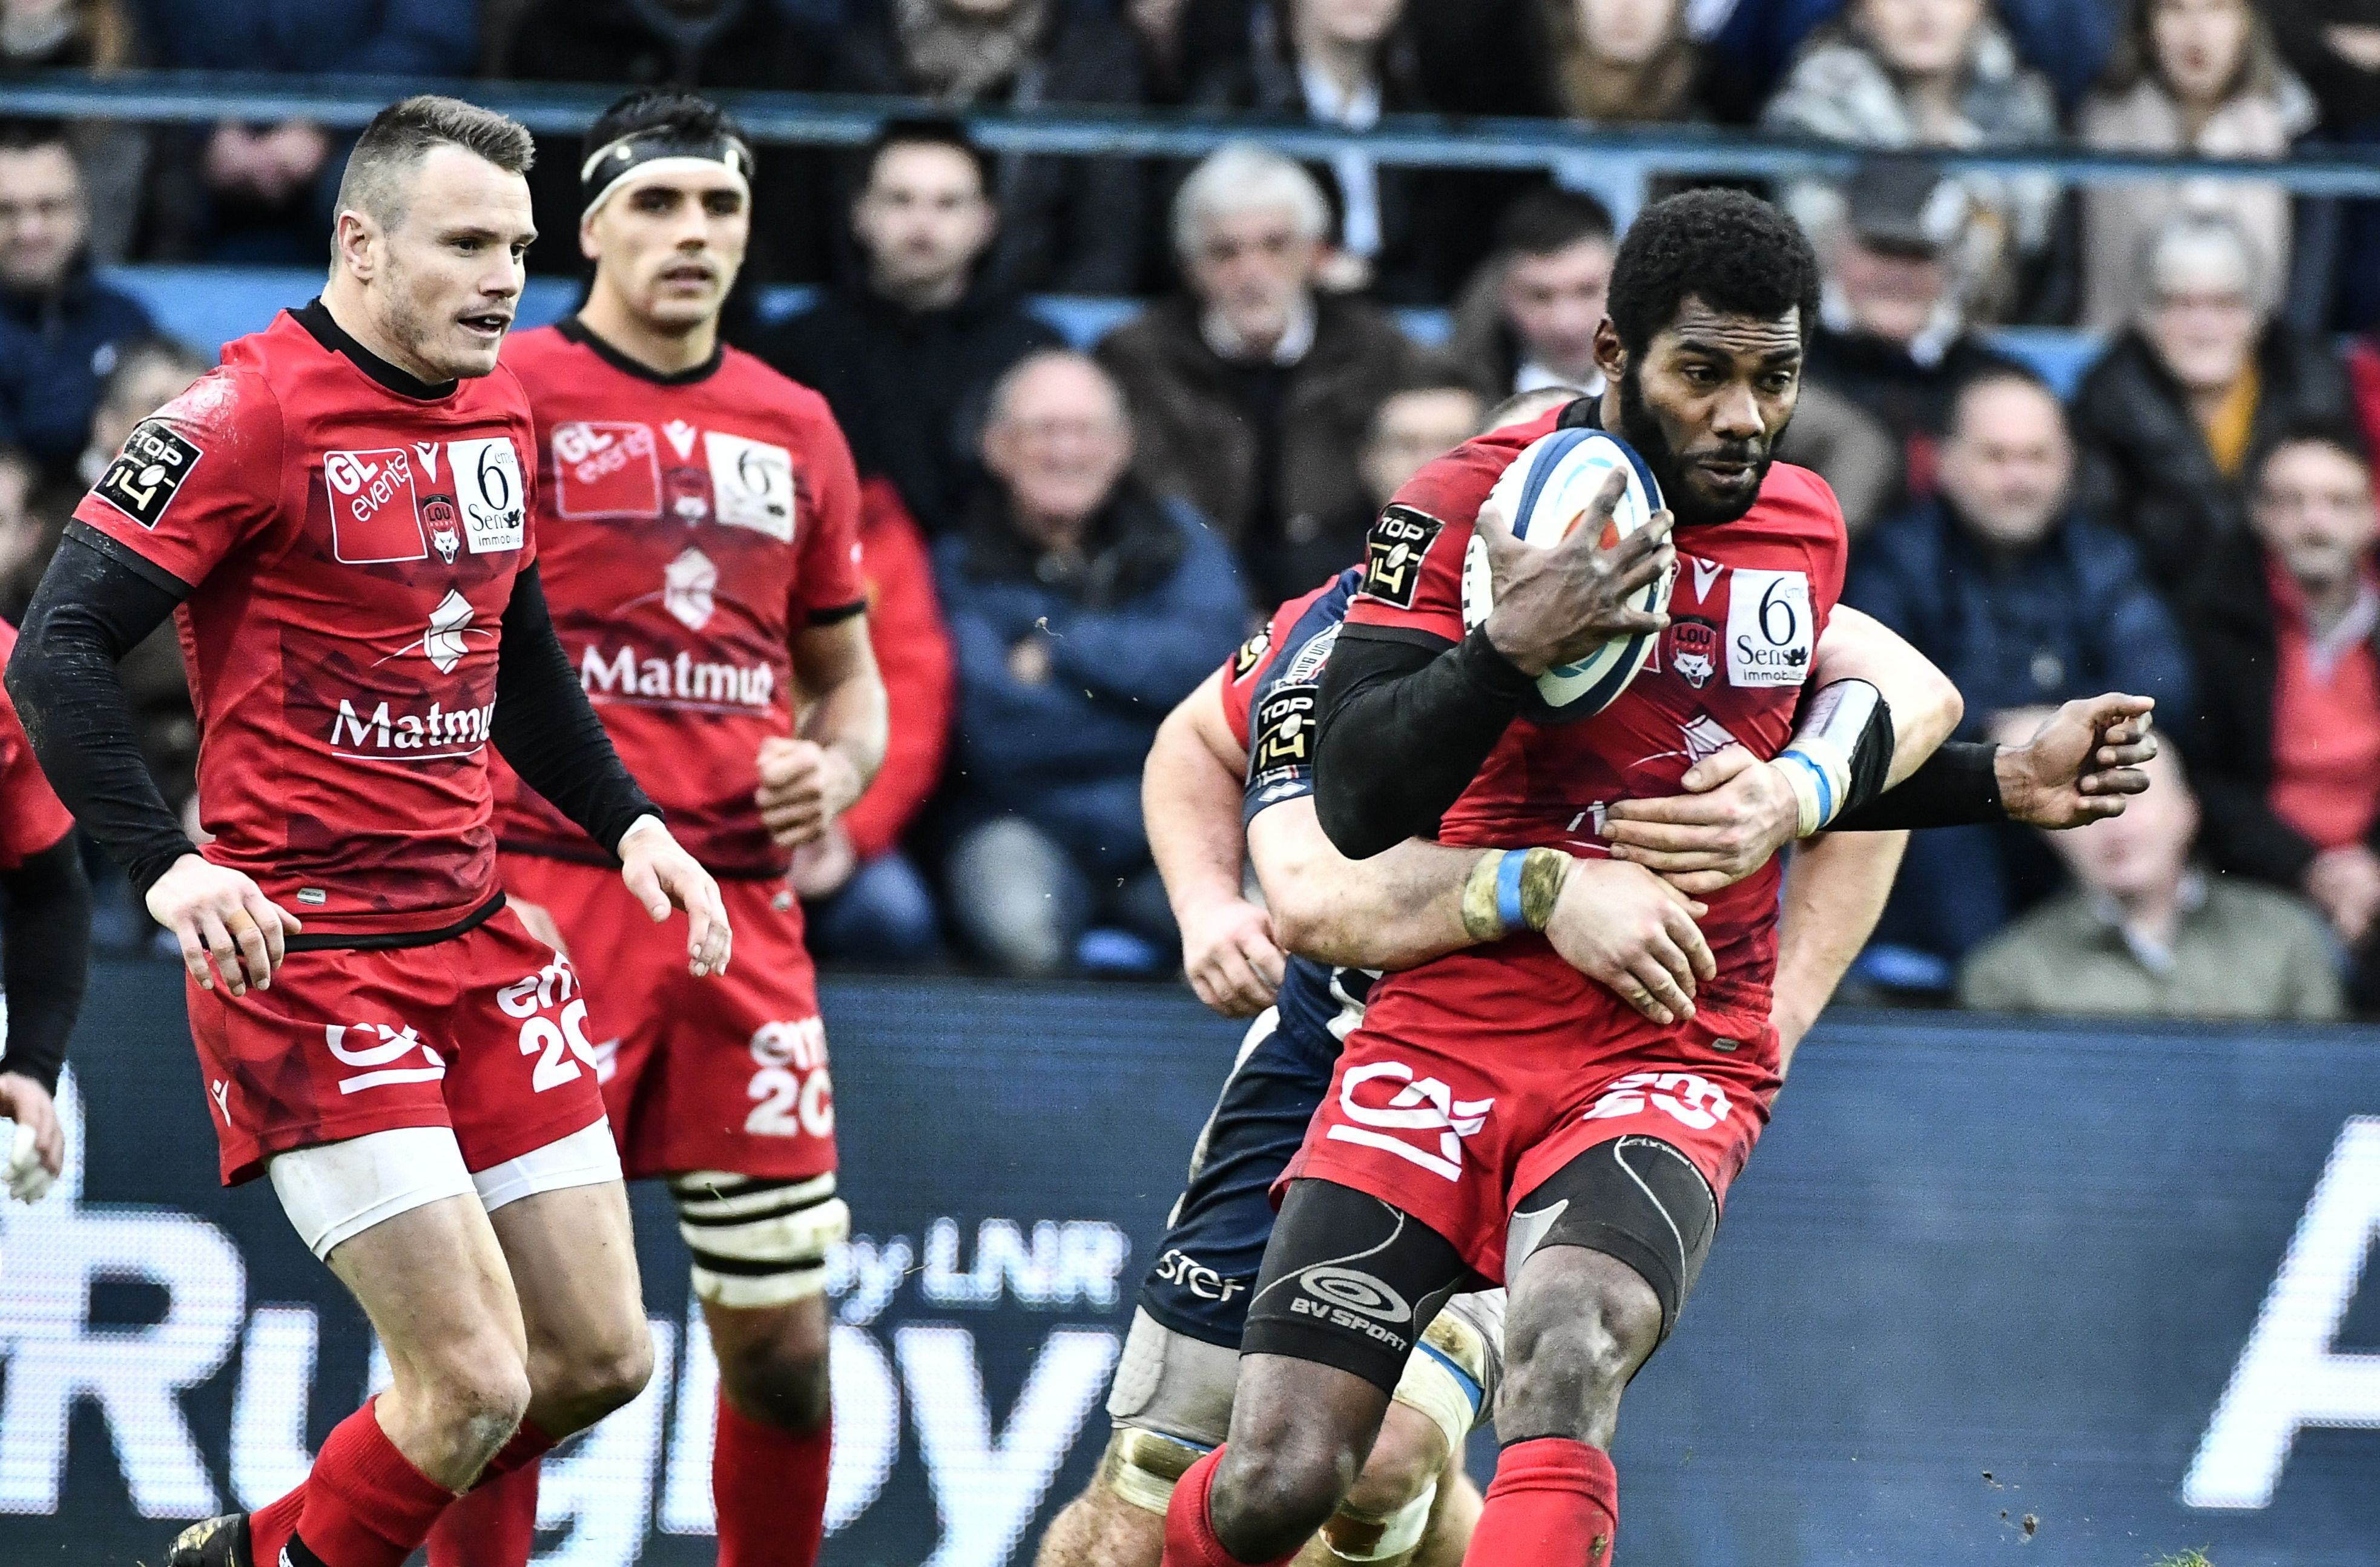 Rugby - Coupes d'Europe - Champions Cup : Leinster-Lyon en direct